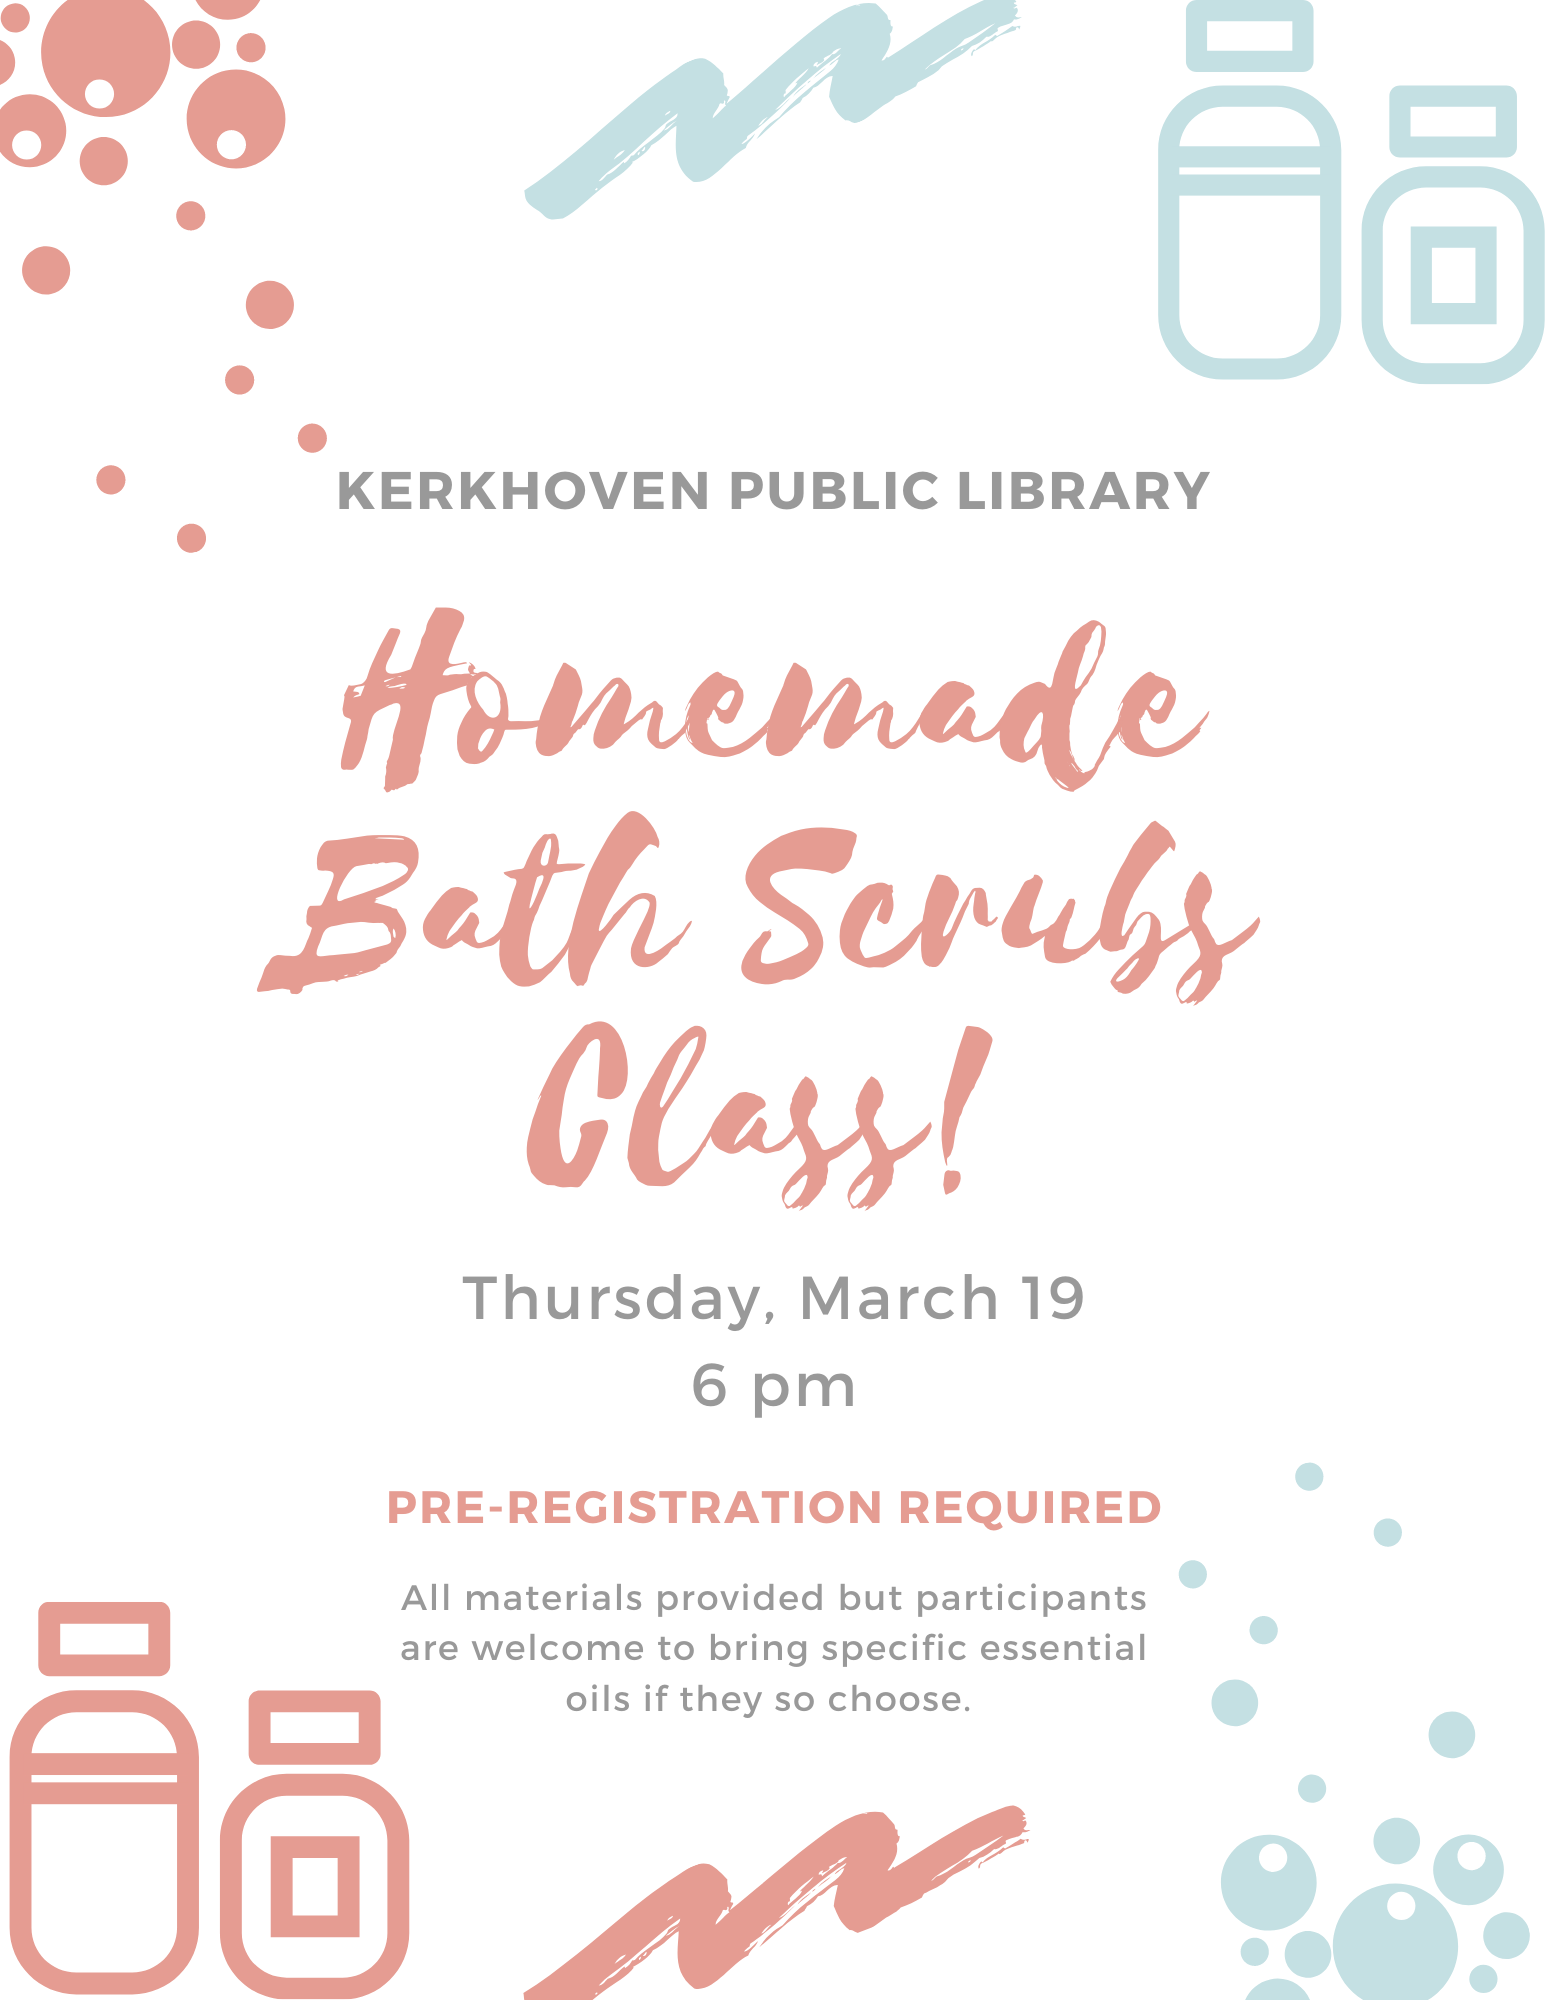 Join us for a Homemade Bath Scrub class on Thursday, March 19 at 6 pm. All materials are provided but pre-registration is